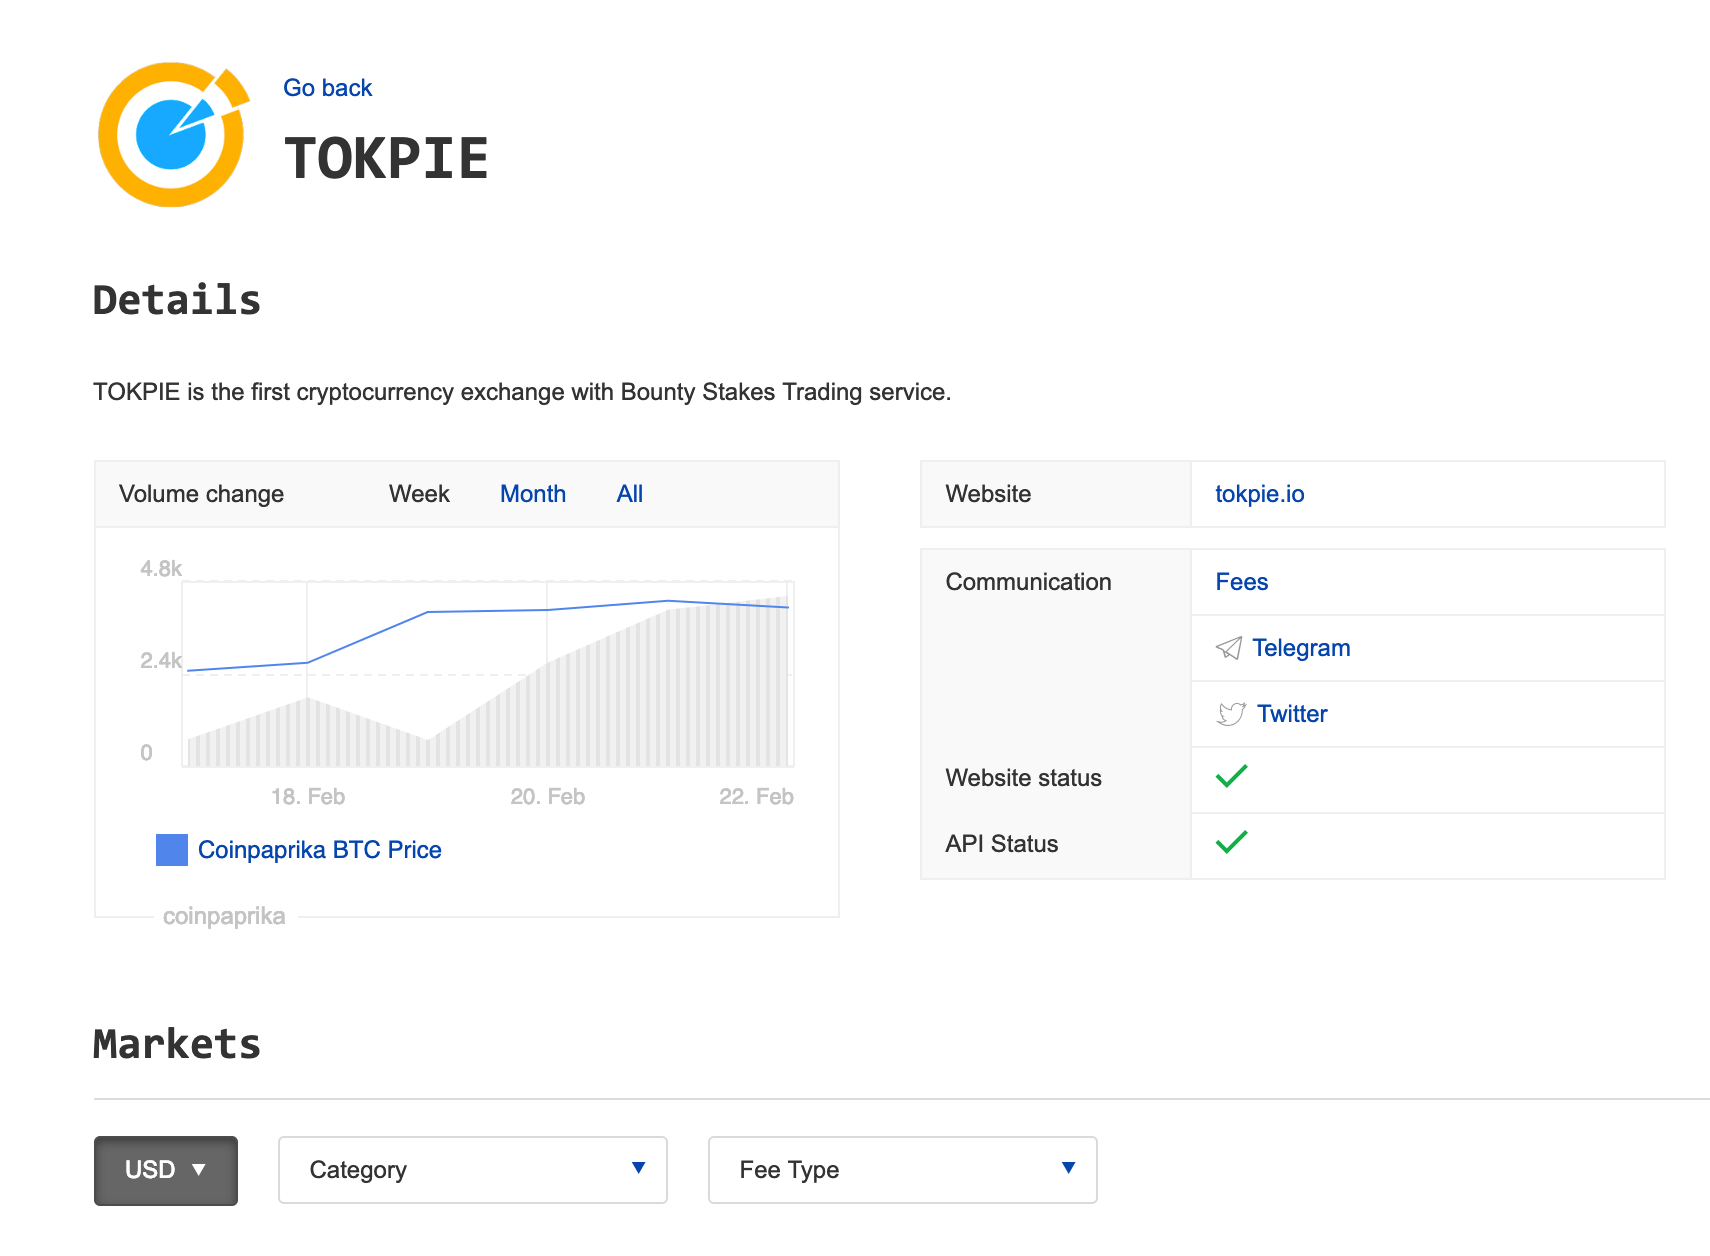 TOKPIE on Coinpaprika